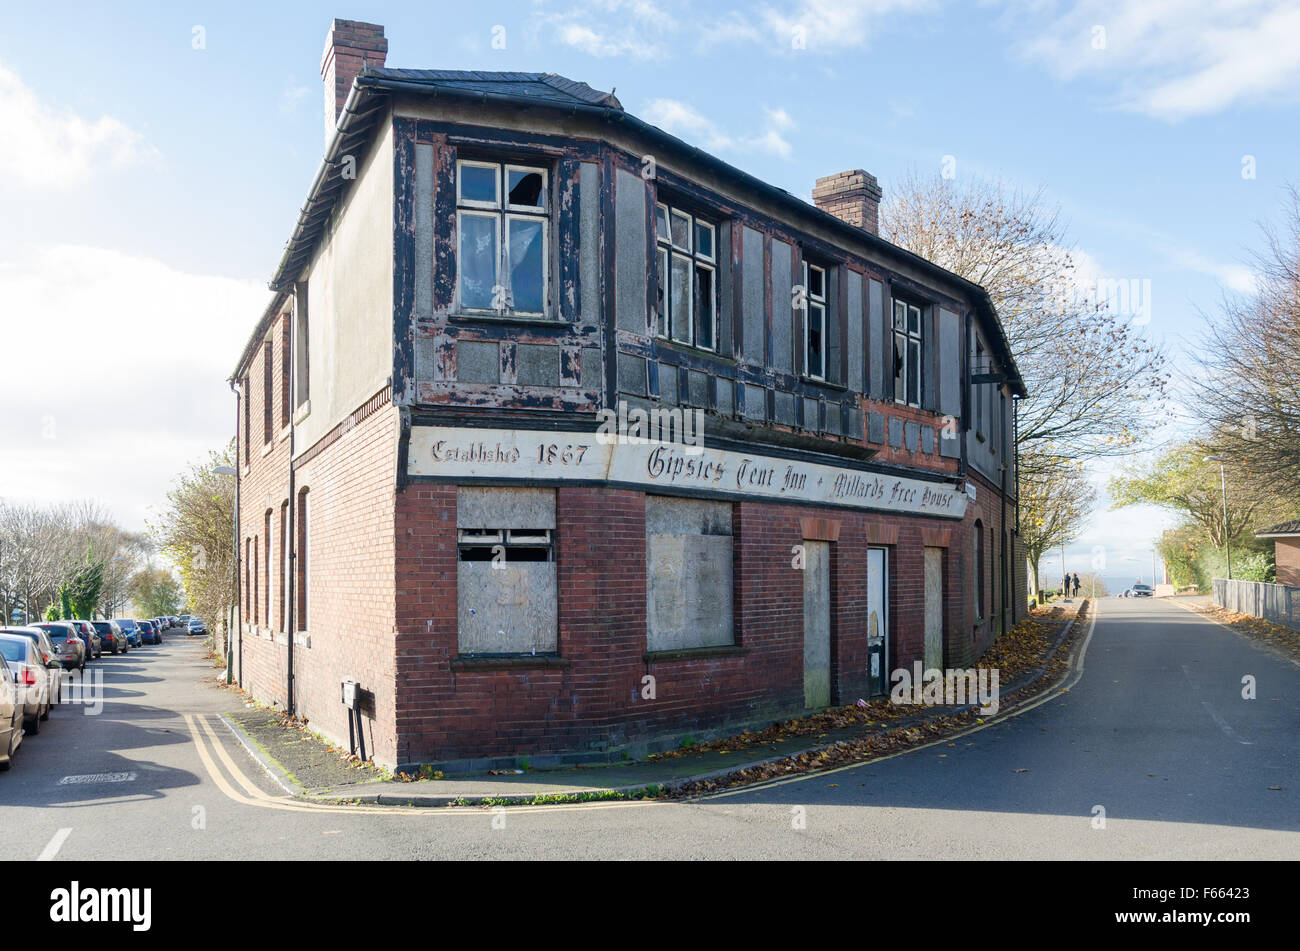 Gipsies Tent Inn, also known as Millard's Free House in Steppingstone Street, Dudley, West Midlands - Stock Image